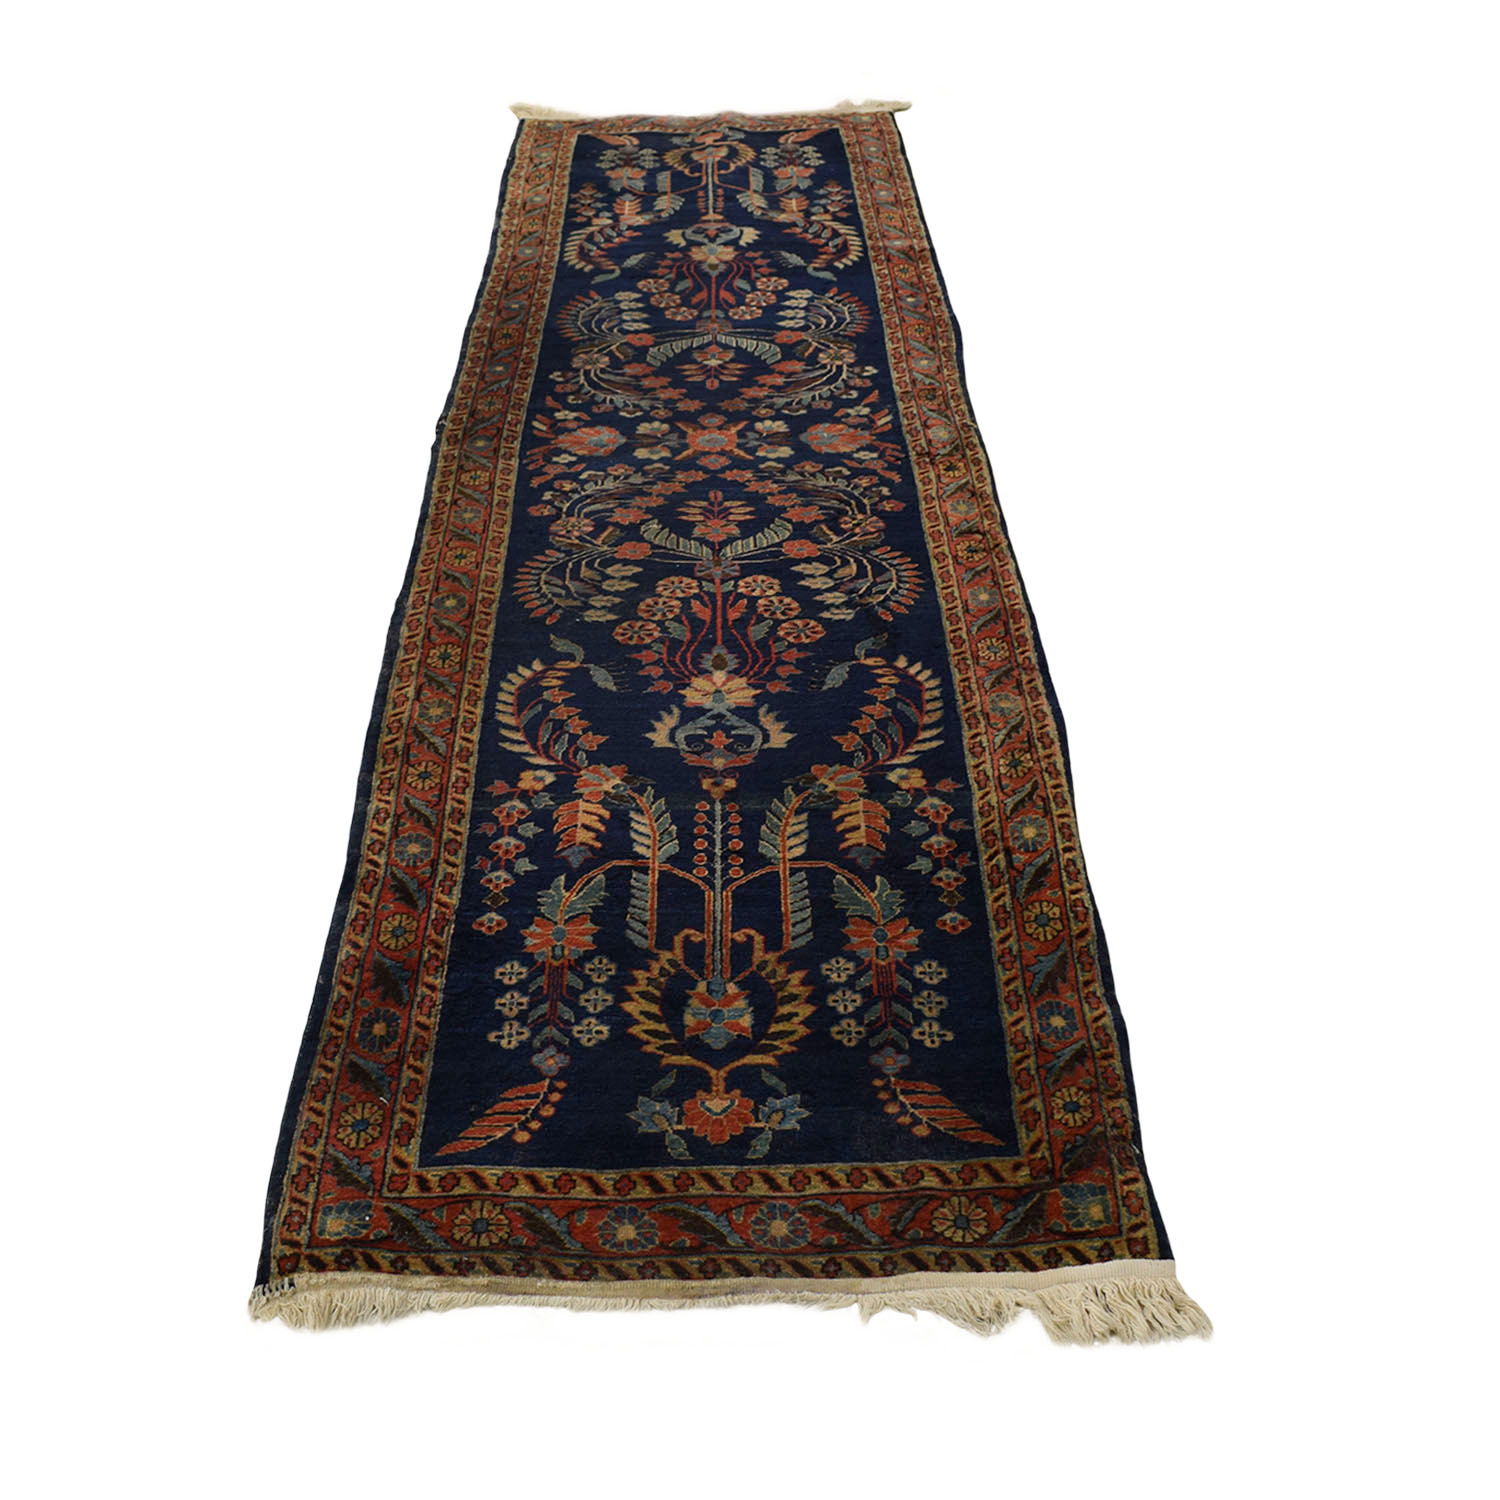 buy  Persian Sarouk Multi-Colored Rug Runner online